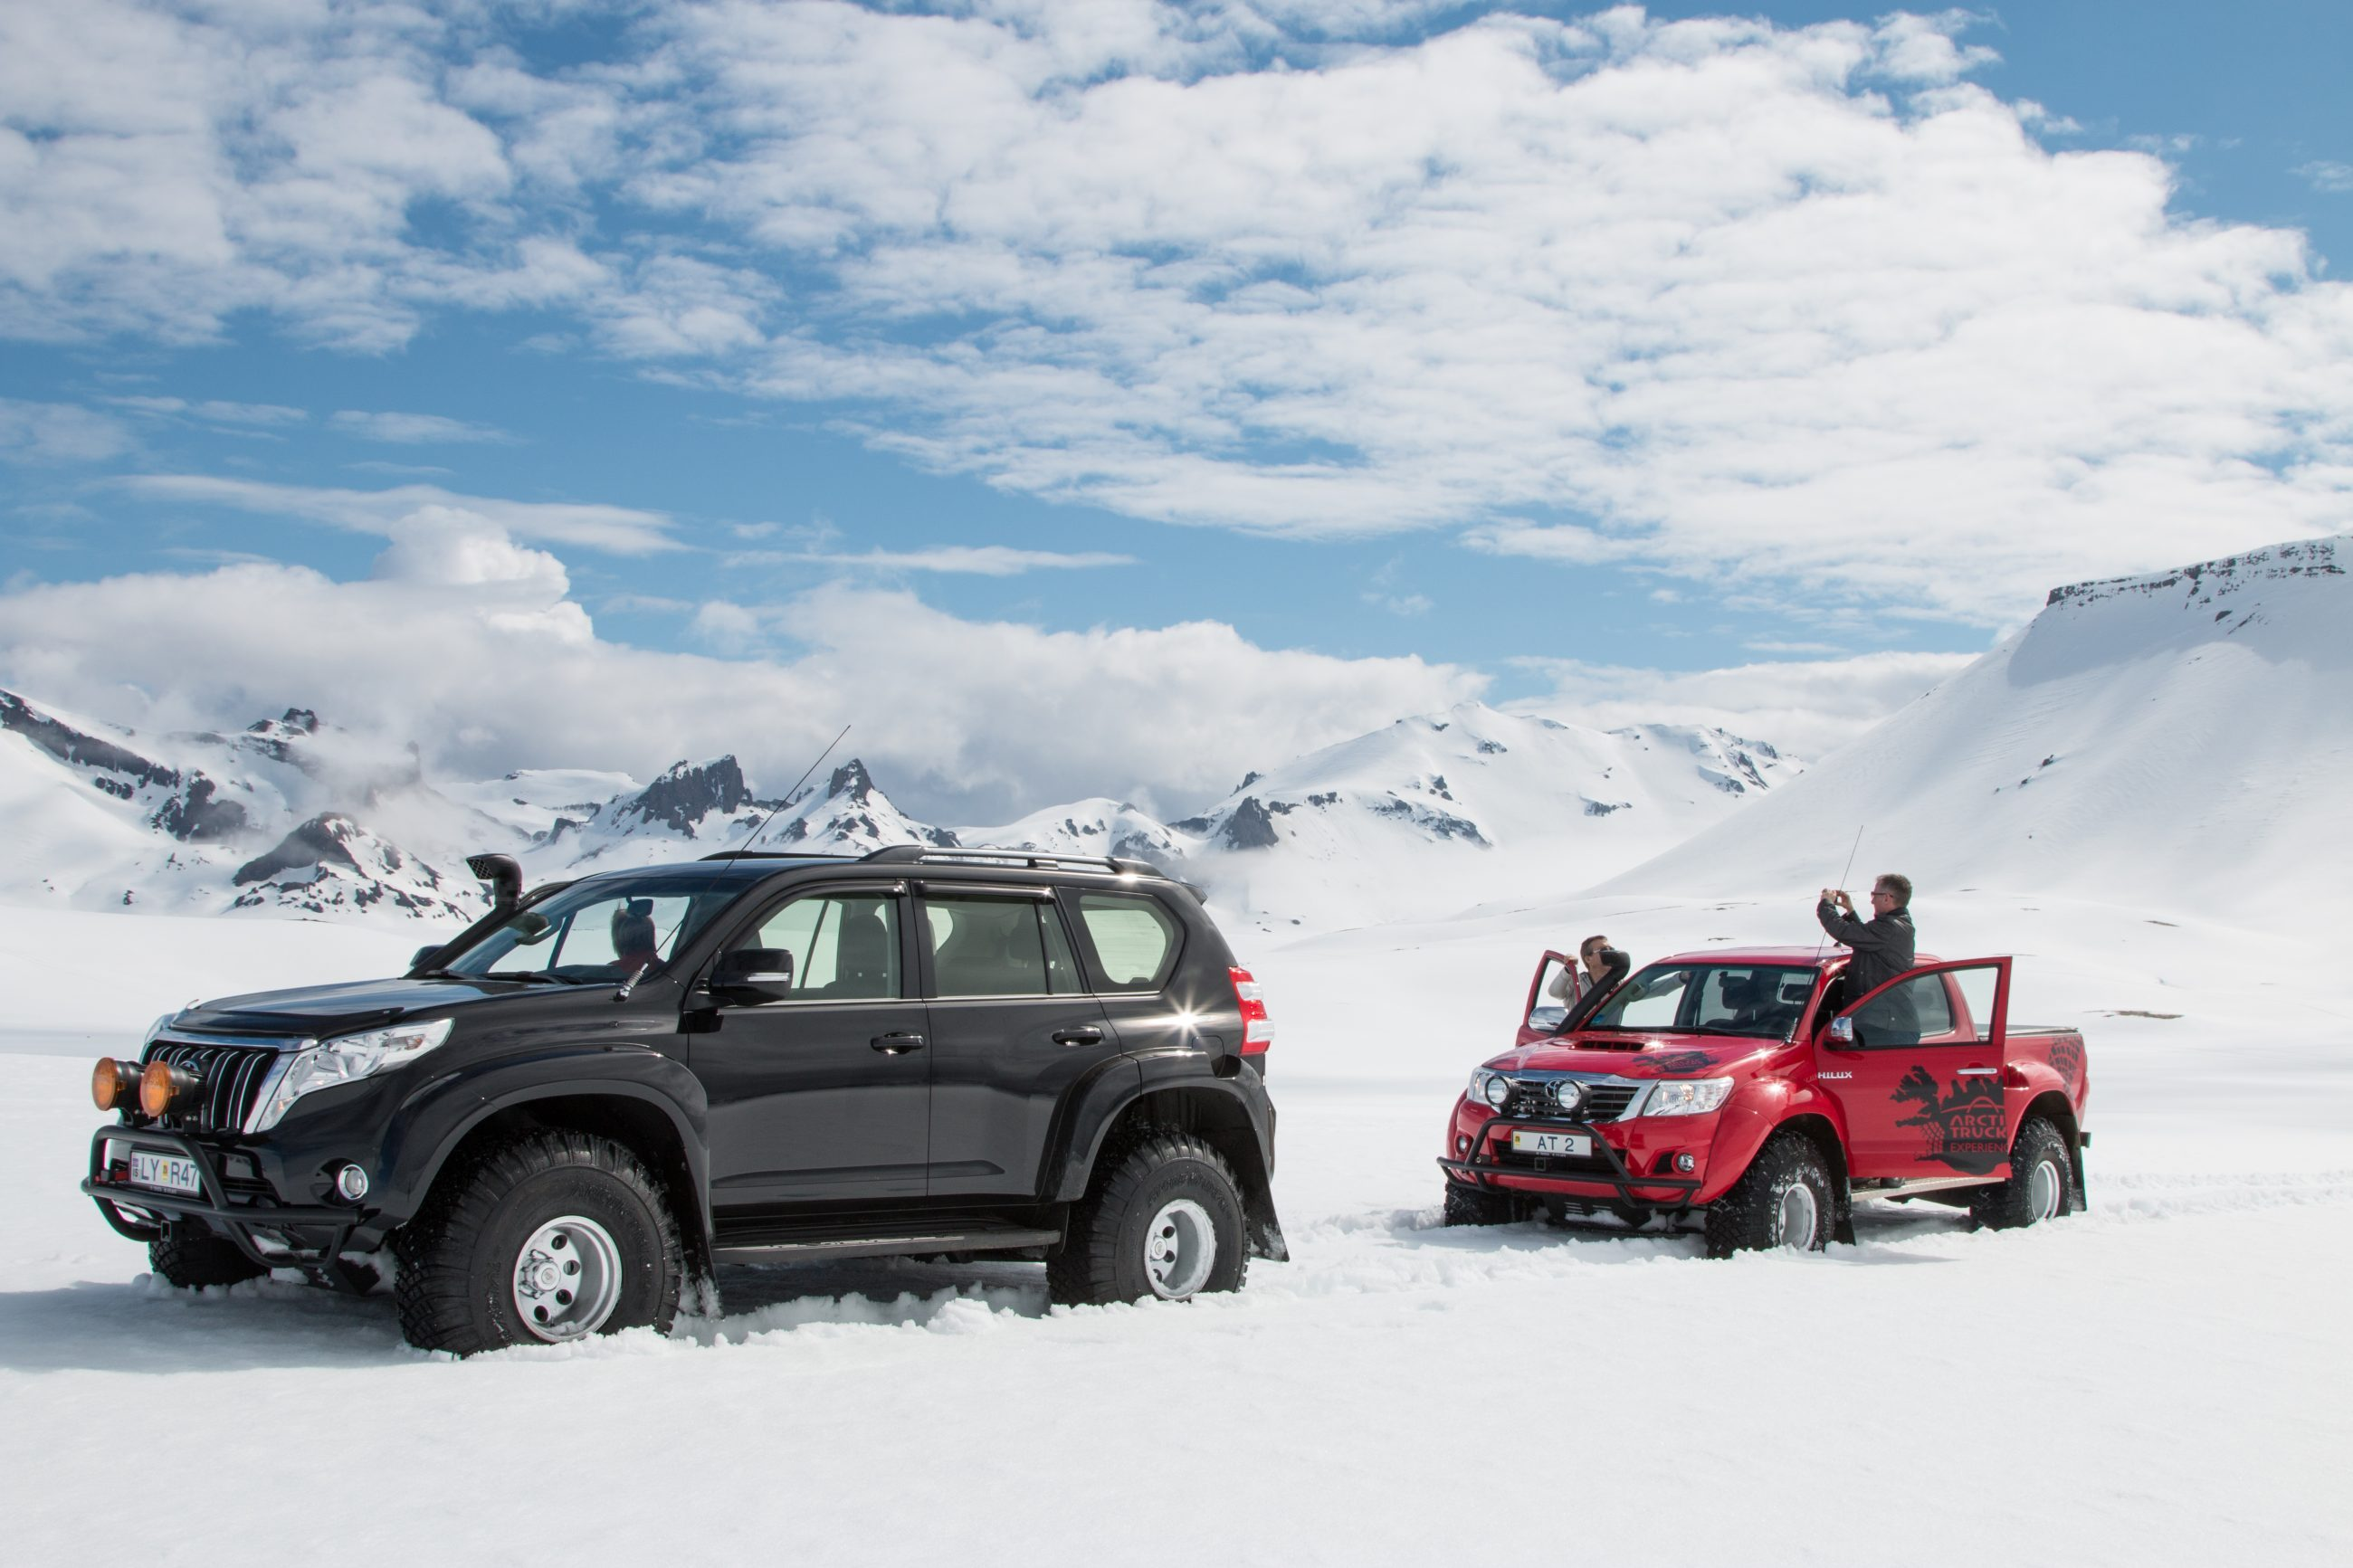 Iceland Truck Tours & Truck Rental - Arctic Trucks Experience